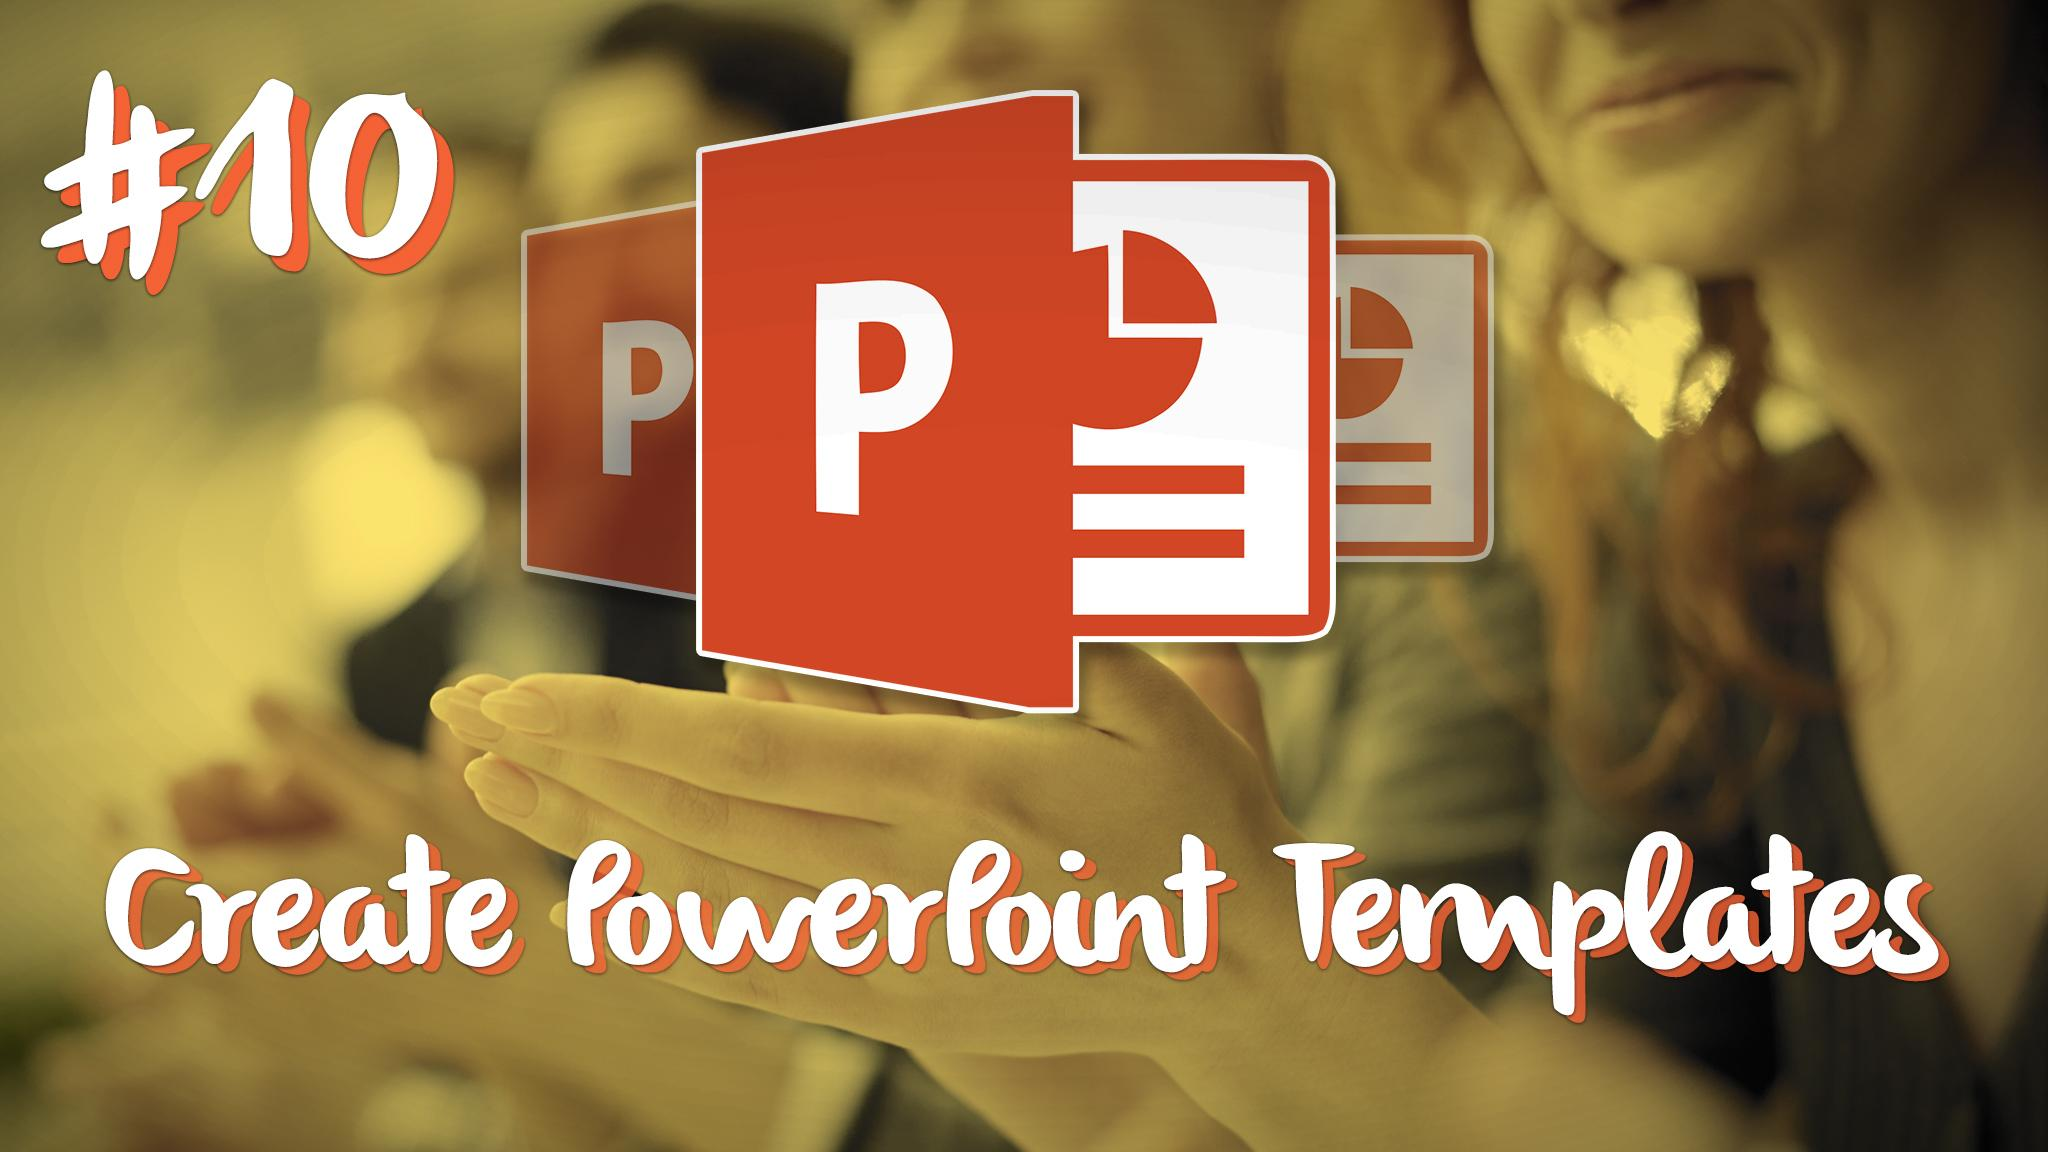 Powerpoint masterclass series 10 create powerpoint templates i will take you by hand and teach to design great presentation templates and slides with confidence once completed you will be toneelgroepblik Images